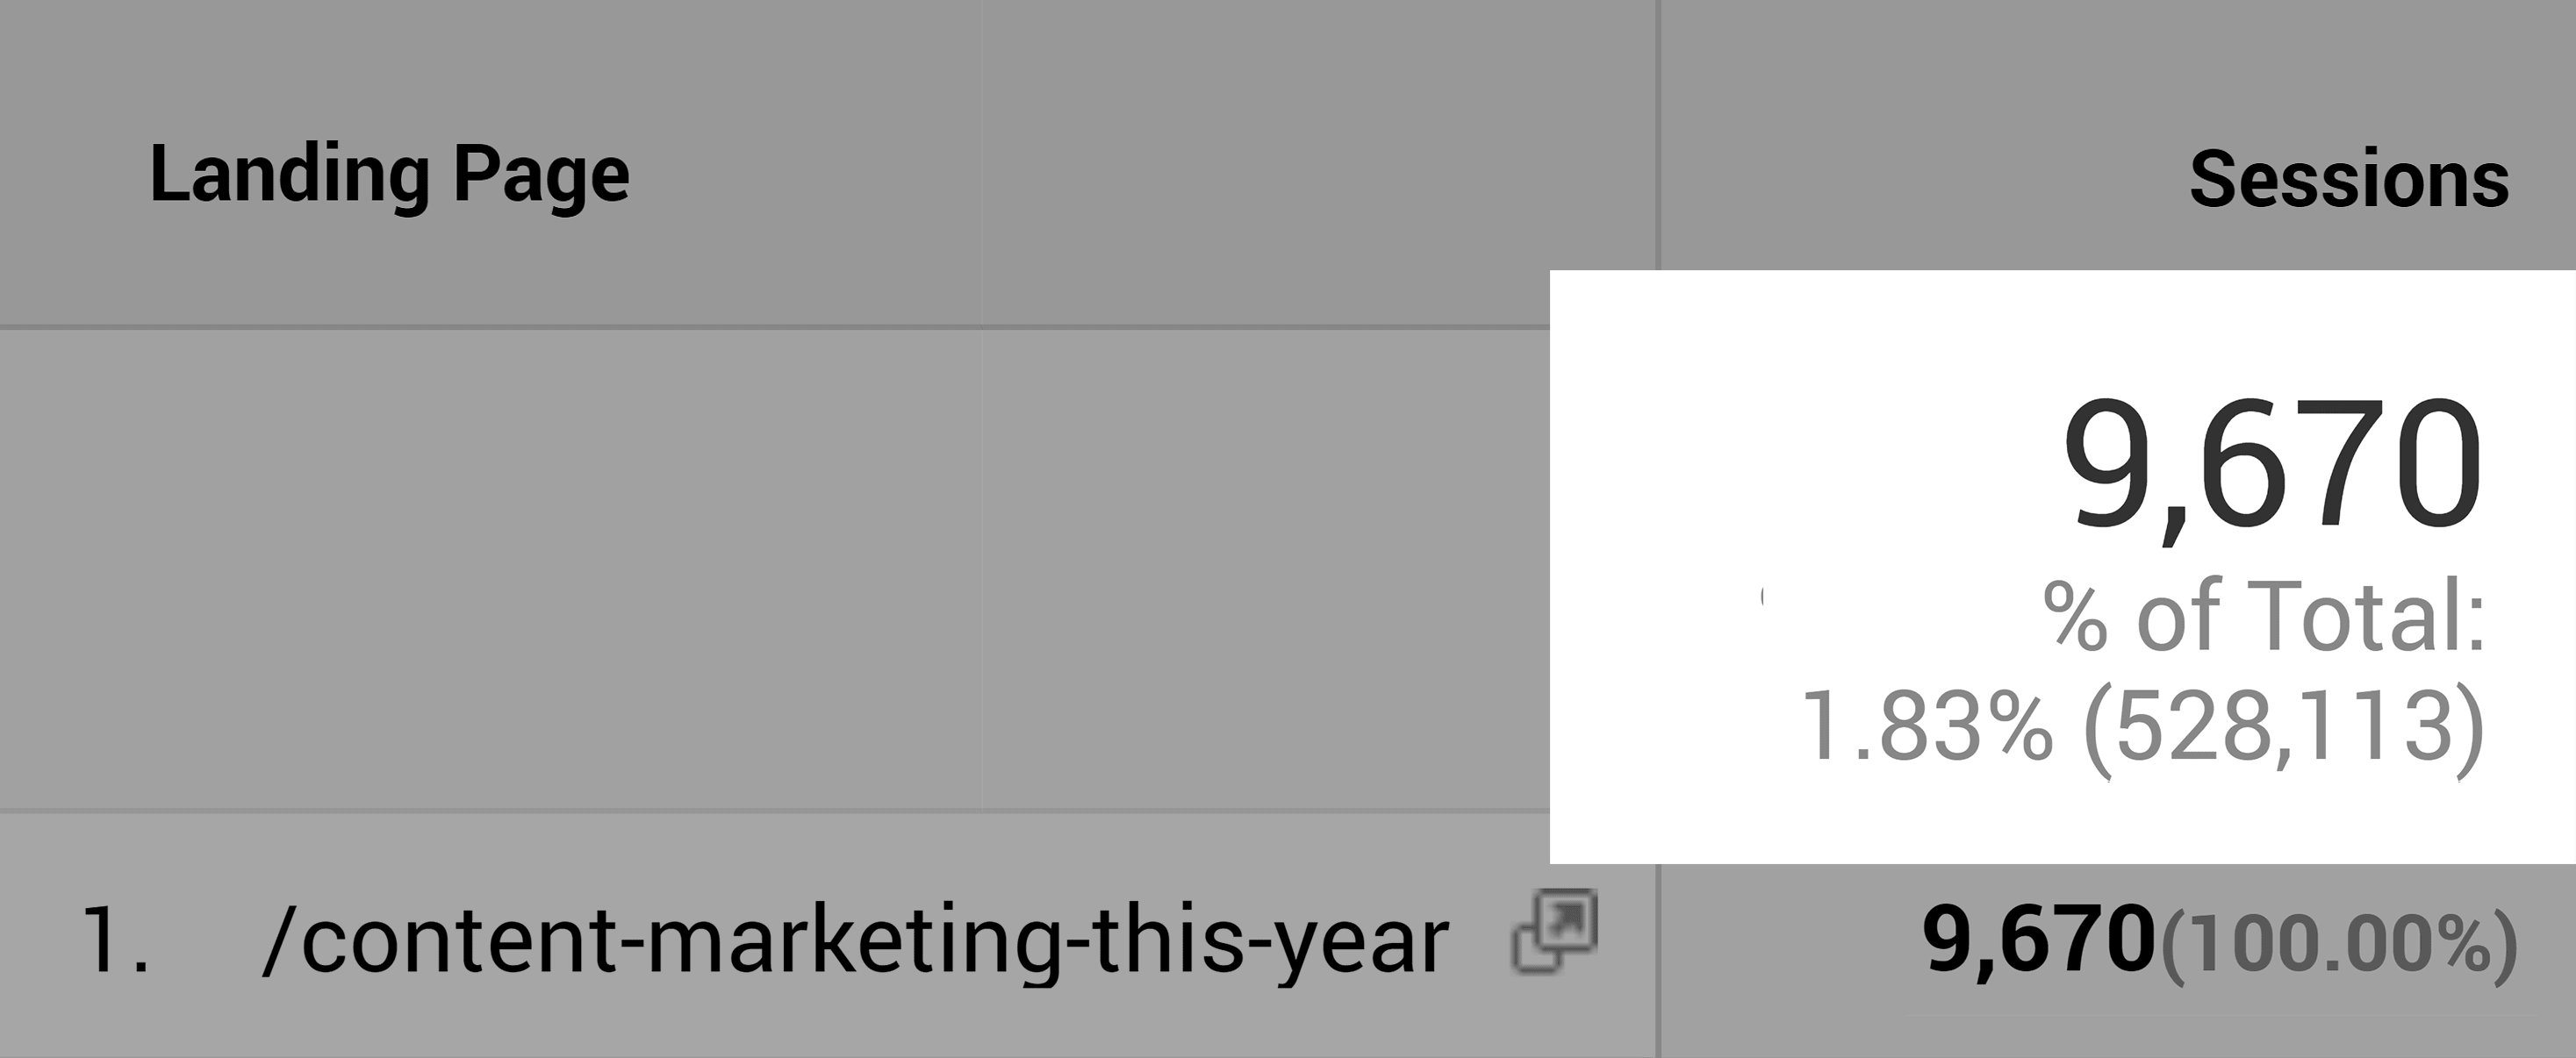 Content marketing this year – Monthly visits